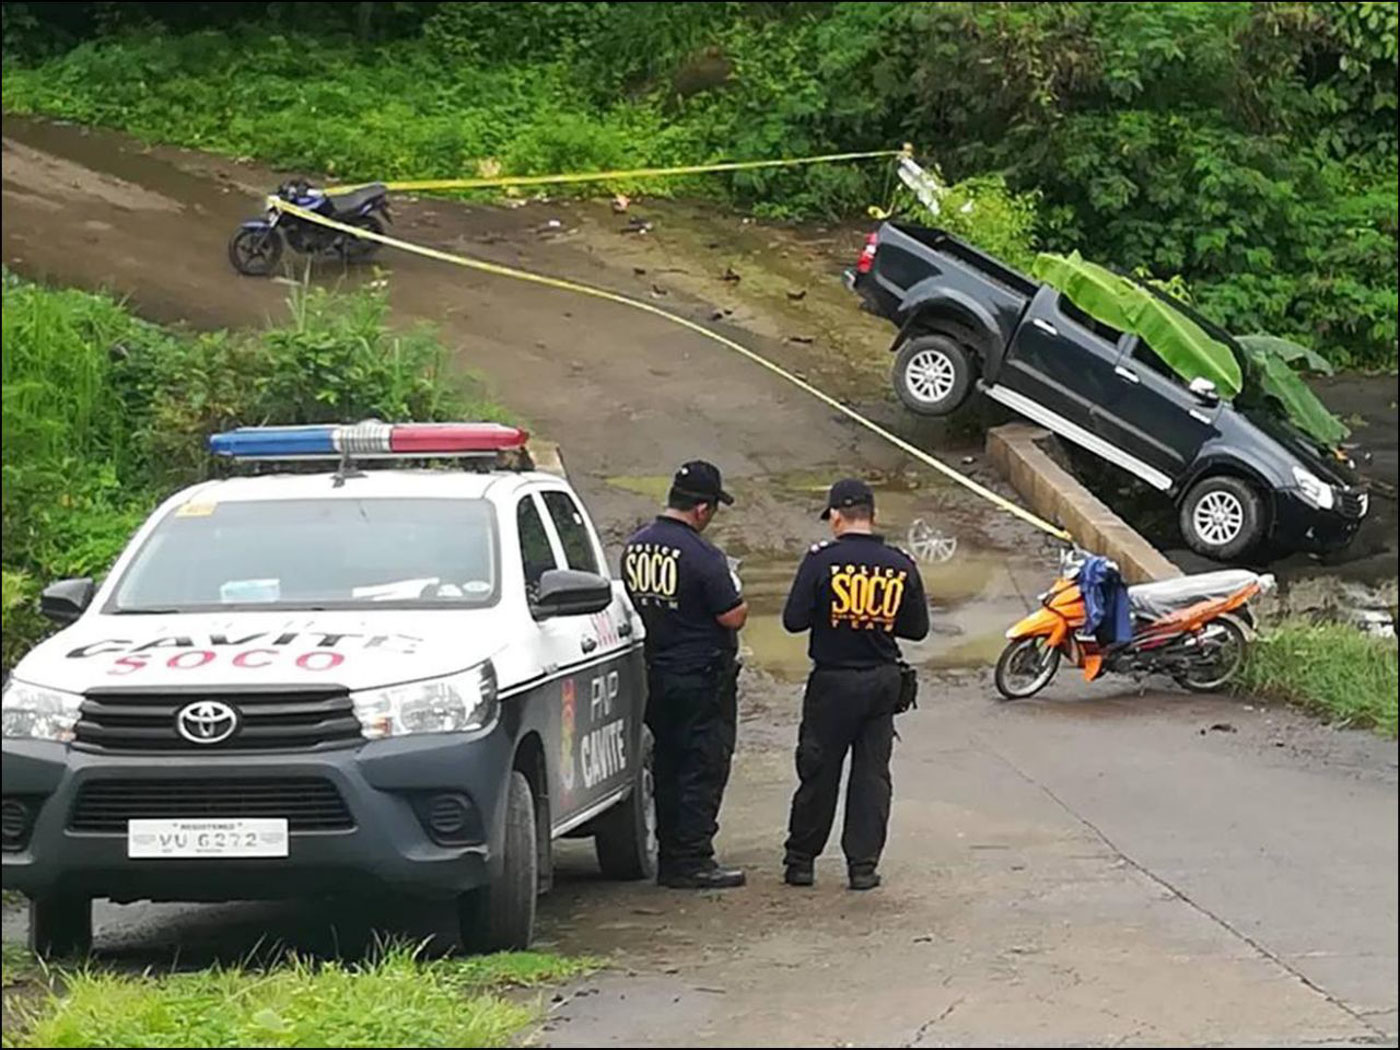 RECOVERED. Police inspect the area where the vehicle was abandoned. PNP photo